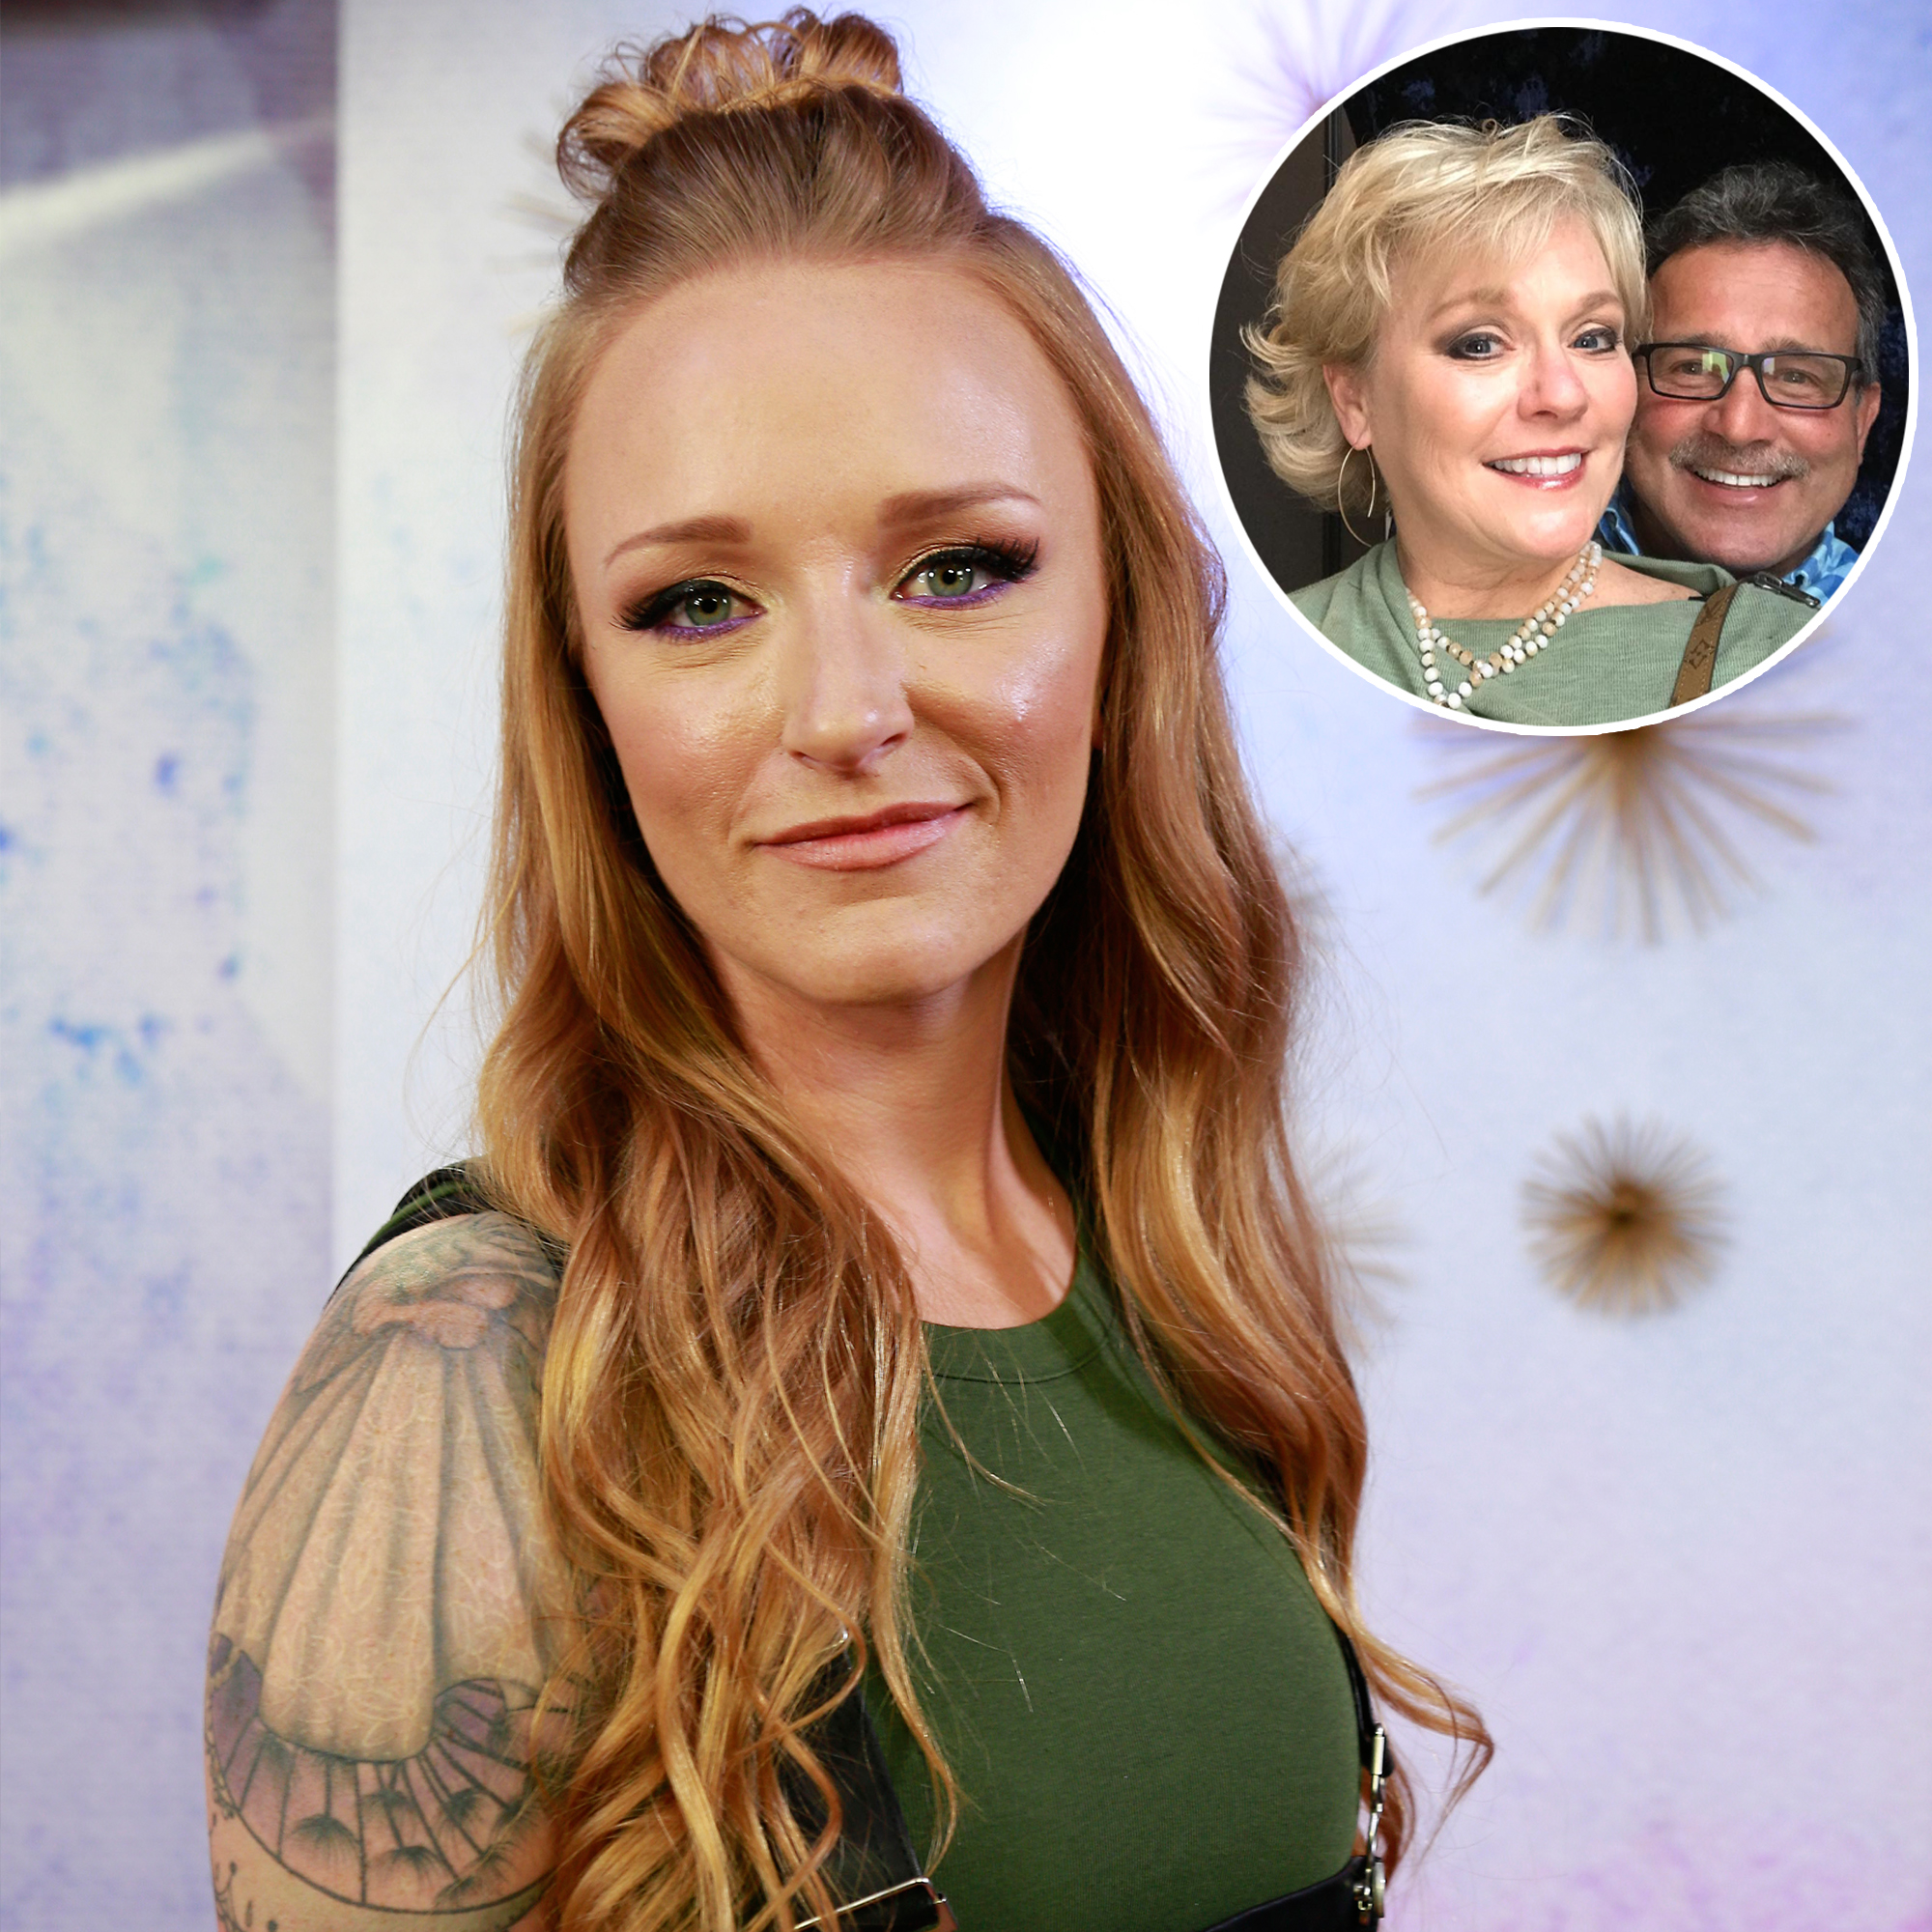 Inset Photo of Larry and Jen Edwards Over Photo of Maci Bookout McKinney